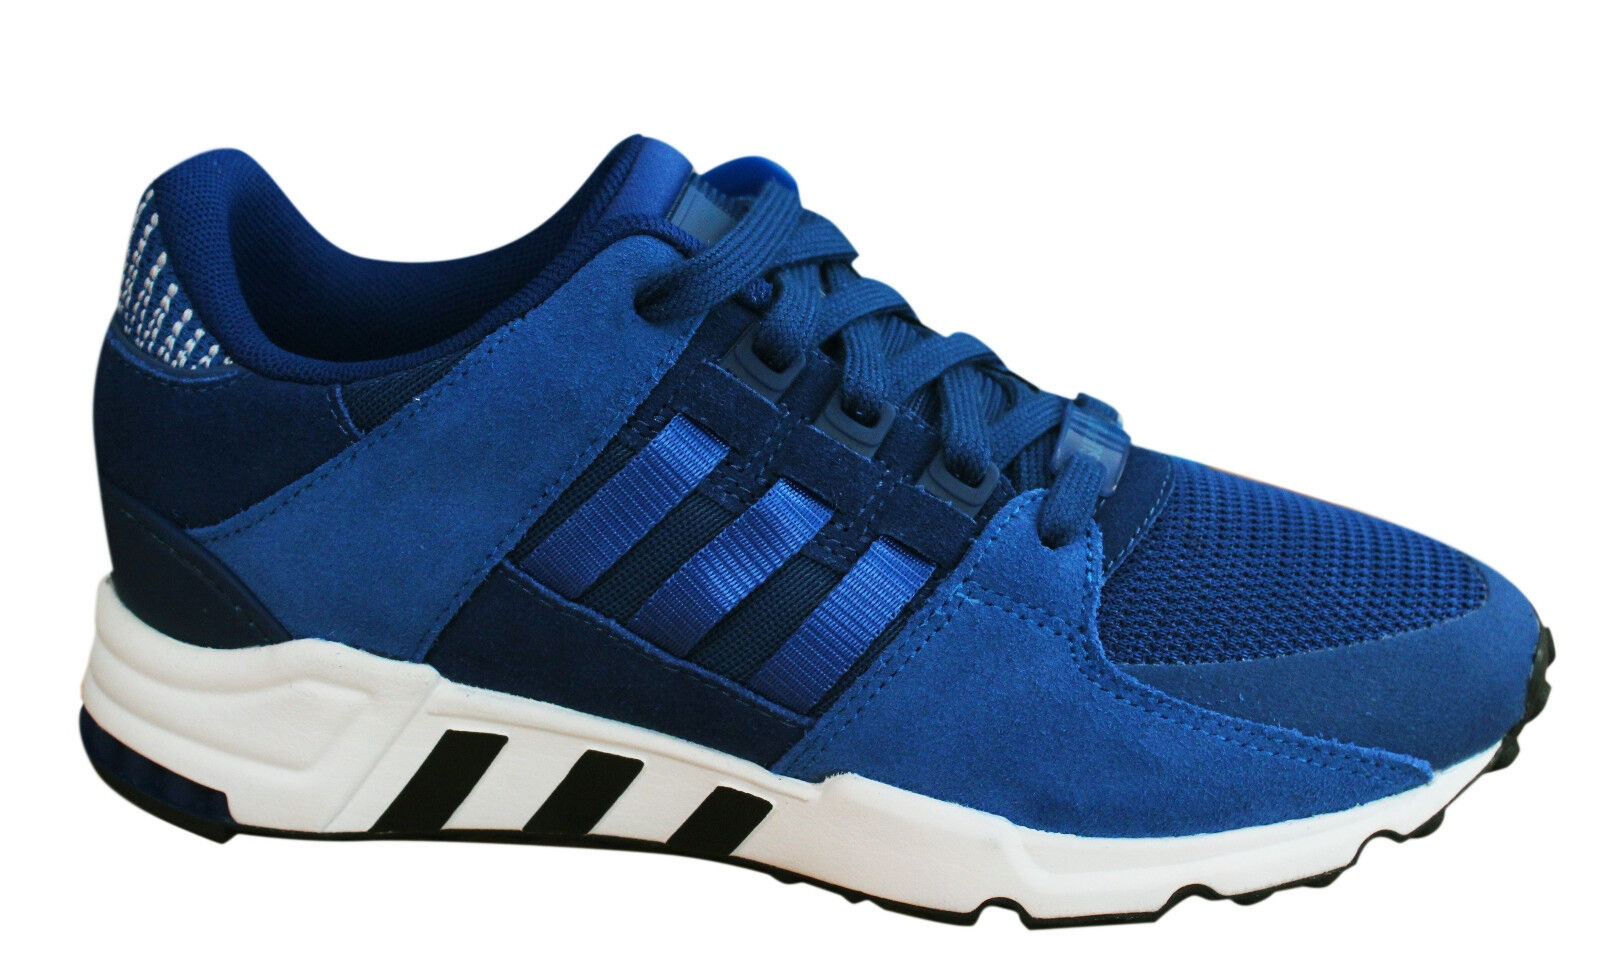 Adidas Equipment Support Refined Mens Trainers Lace Up shoes bluee BY9624 M17